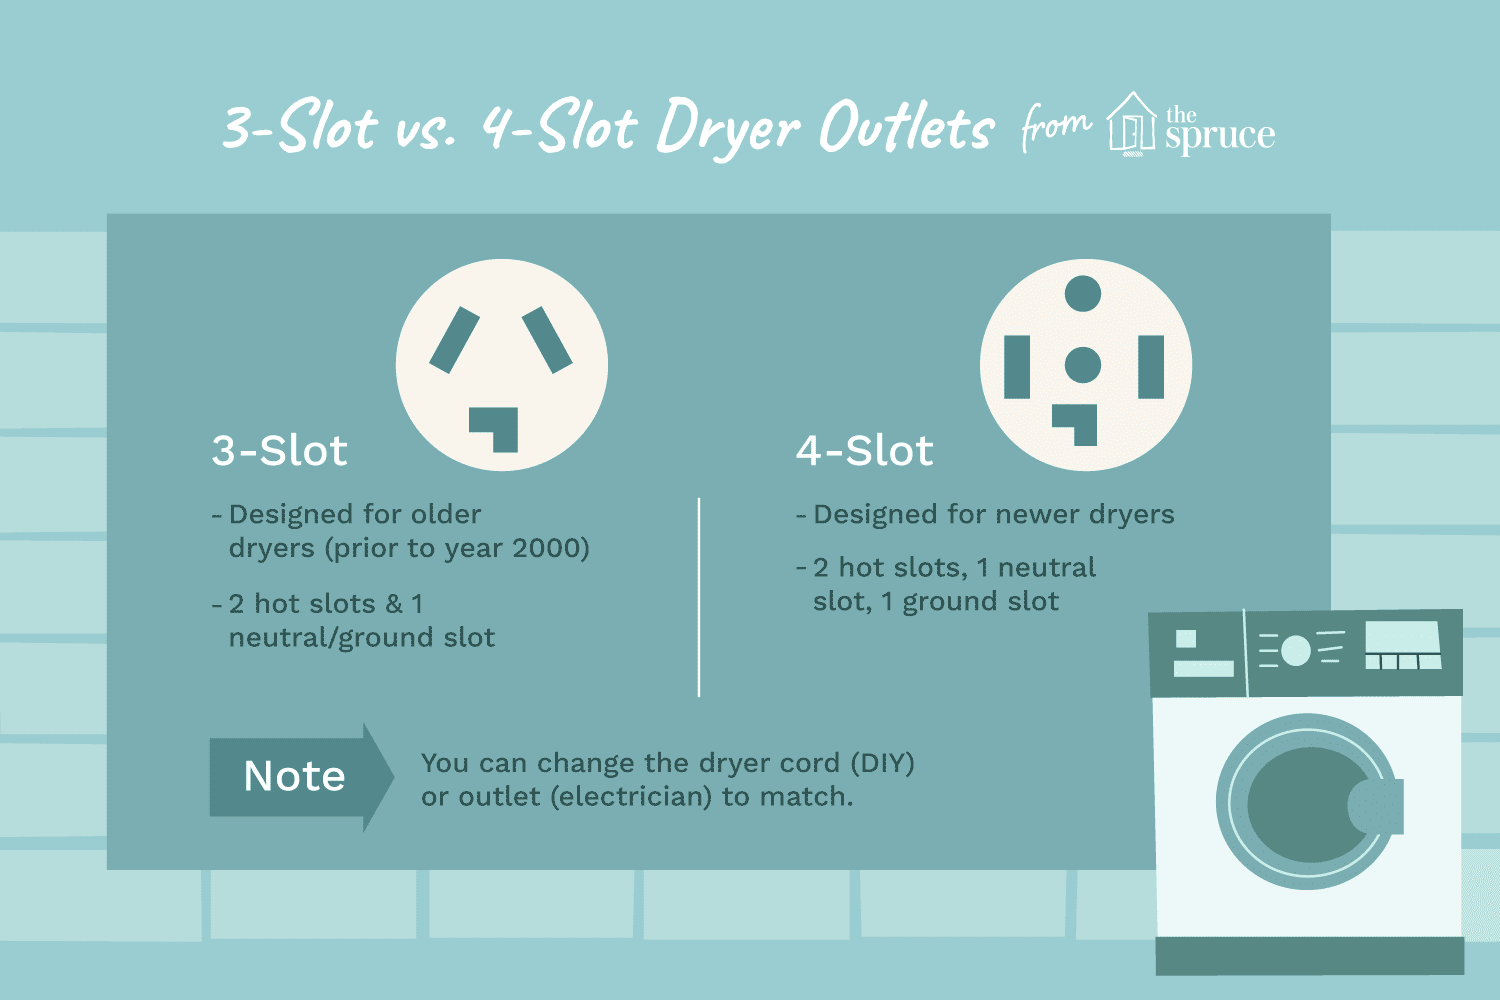 3 and 4 slot dryer